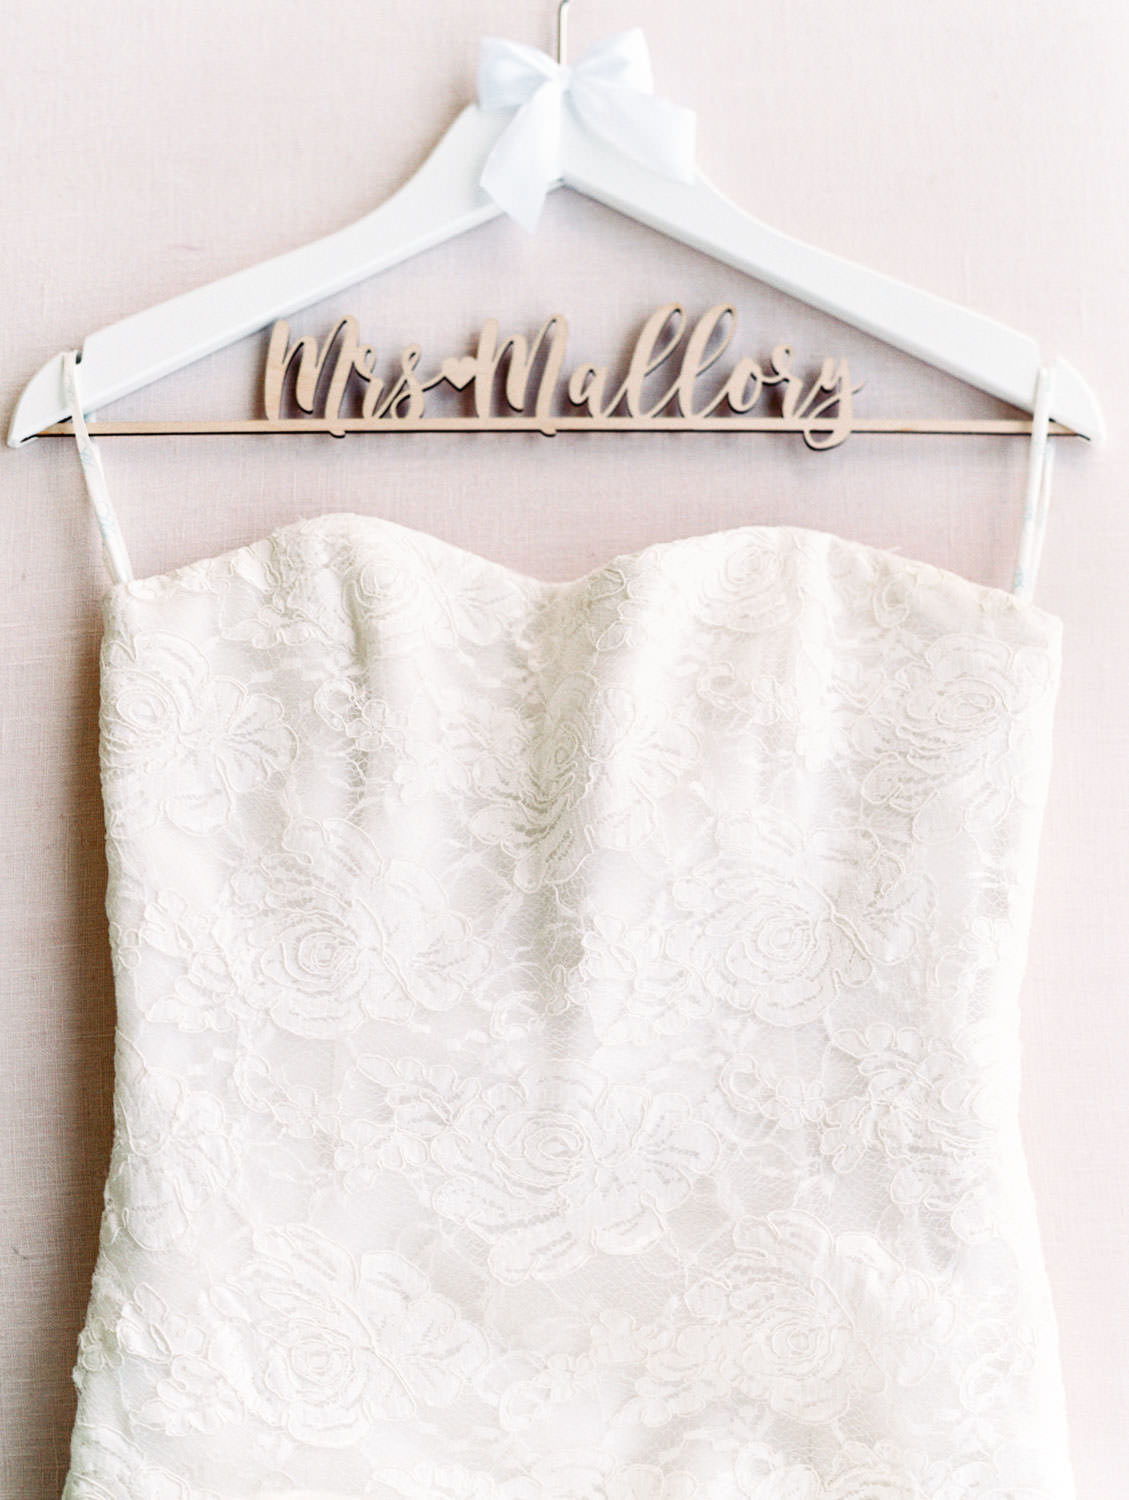 Strapless wedding gown with lace and custom white hanger with wooden laser cut last name on film, Wedding at Humphreys Half Moon Inn by Cavin Elizabeth Photography